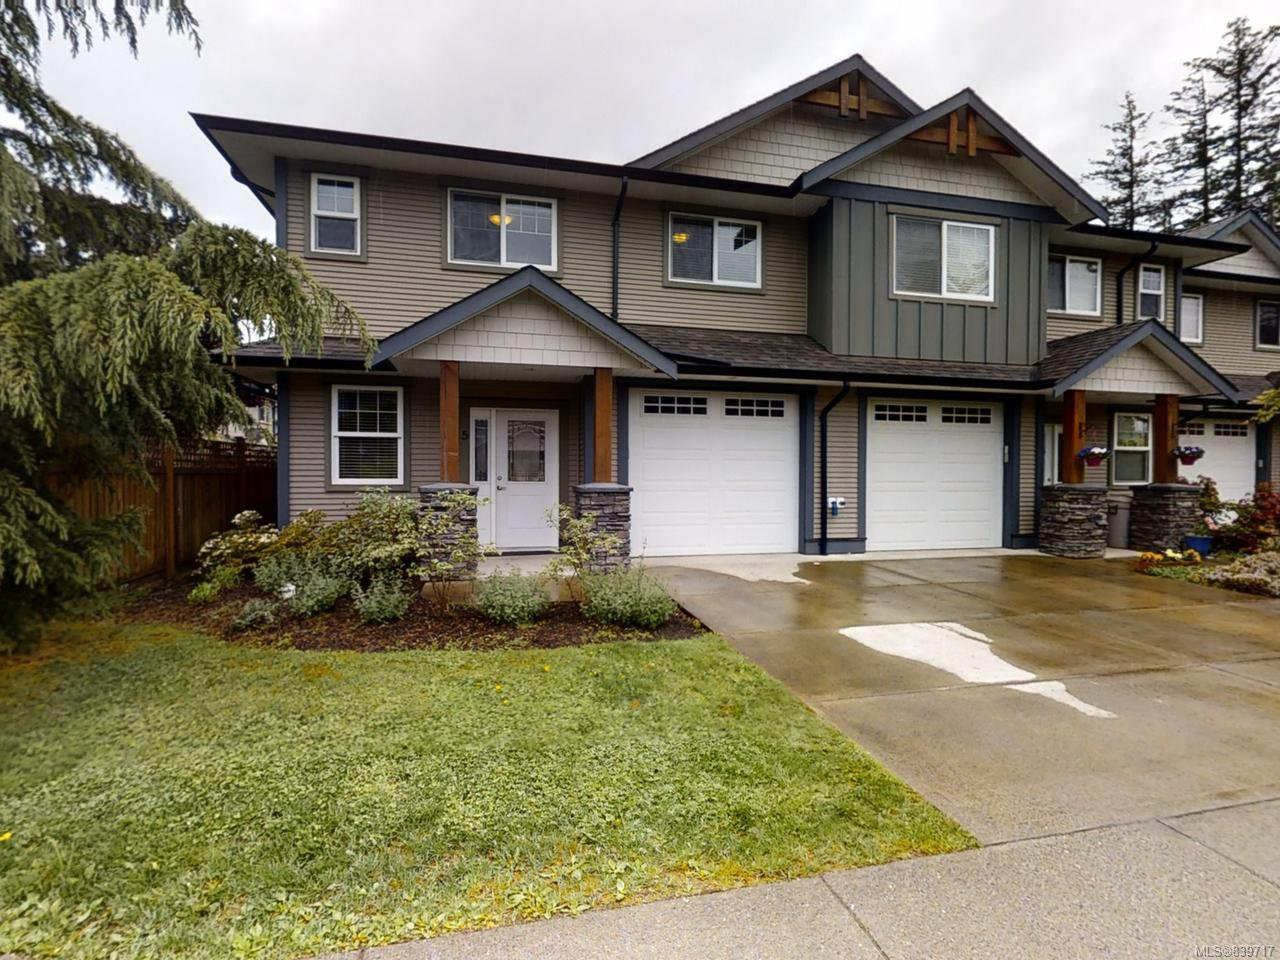 Main Photo: 5 2112 Cumberland Rd in COURTENAY: CV Courtenay City Row/Townhouse for sale (Comox Valley)  : MLS®# 839717